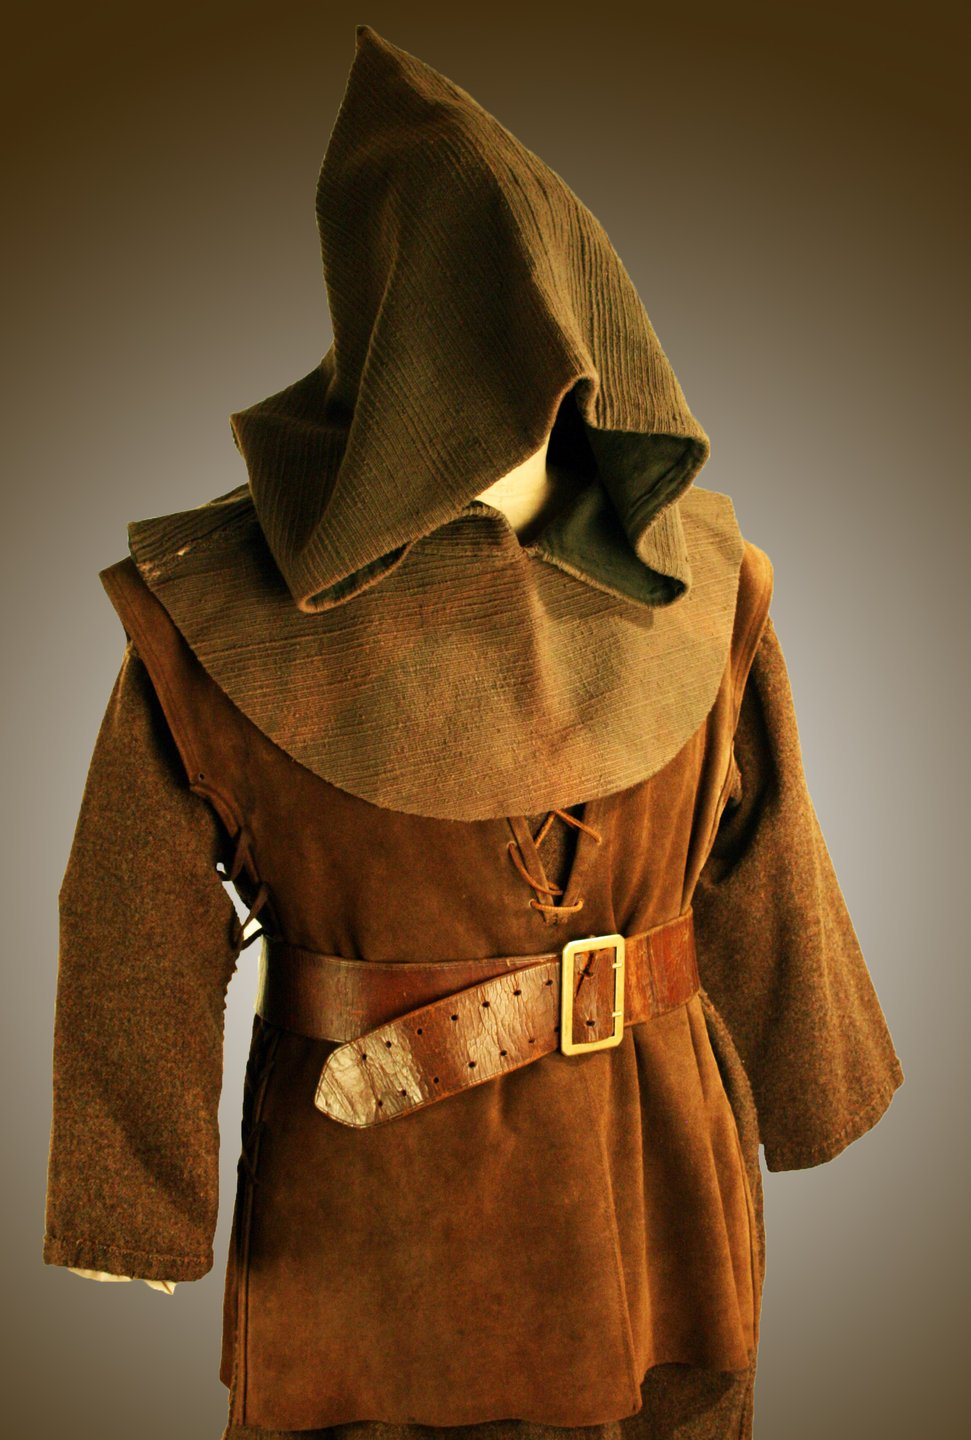 Antiquity Amp The Middle Ages La Compagnie Du Costume